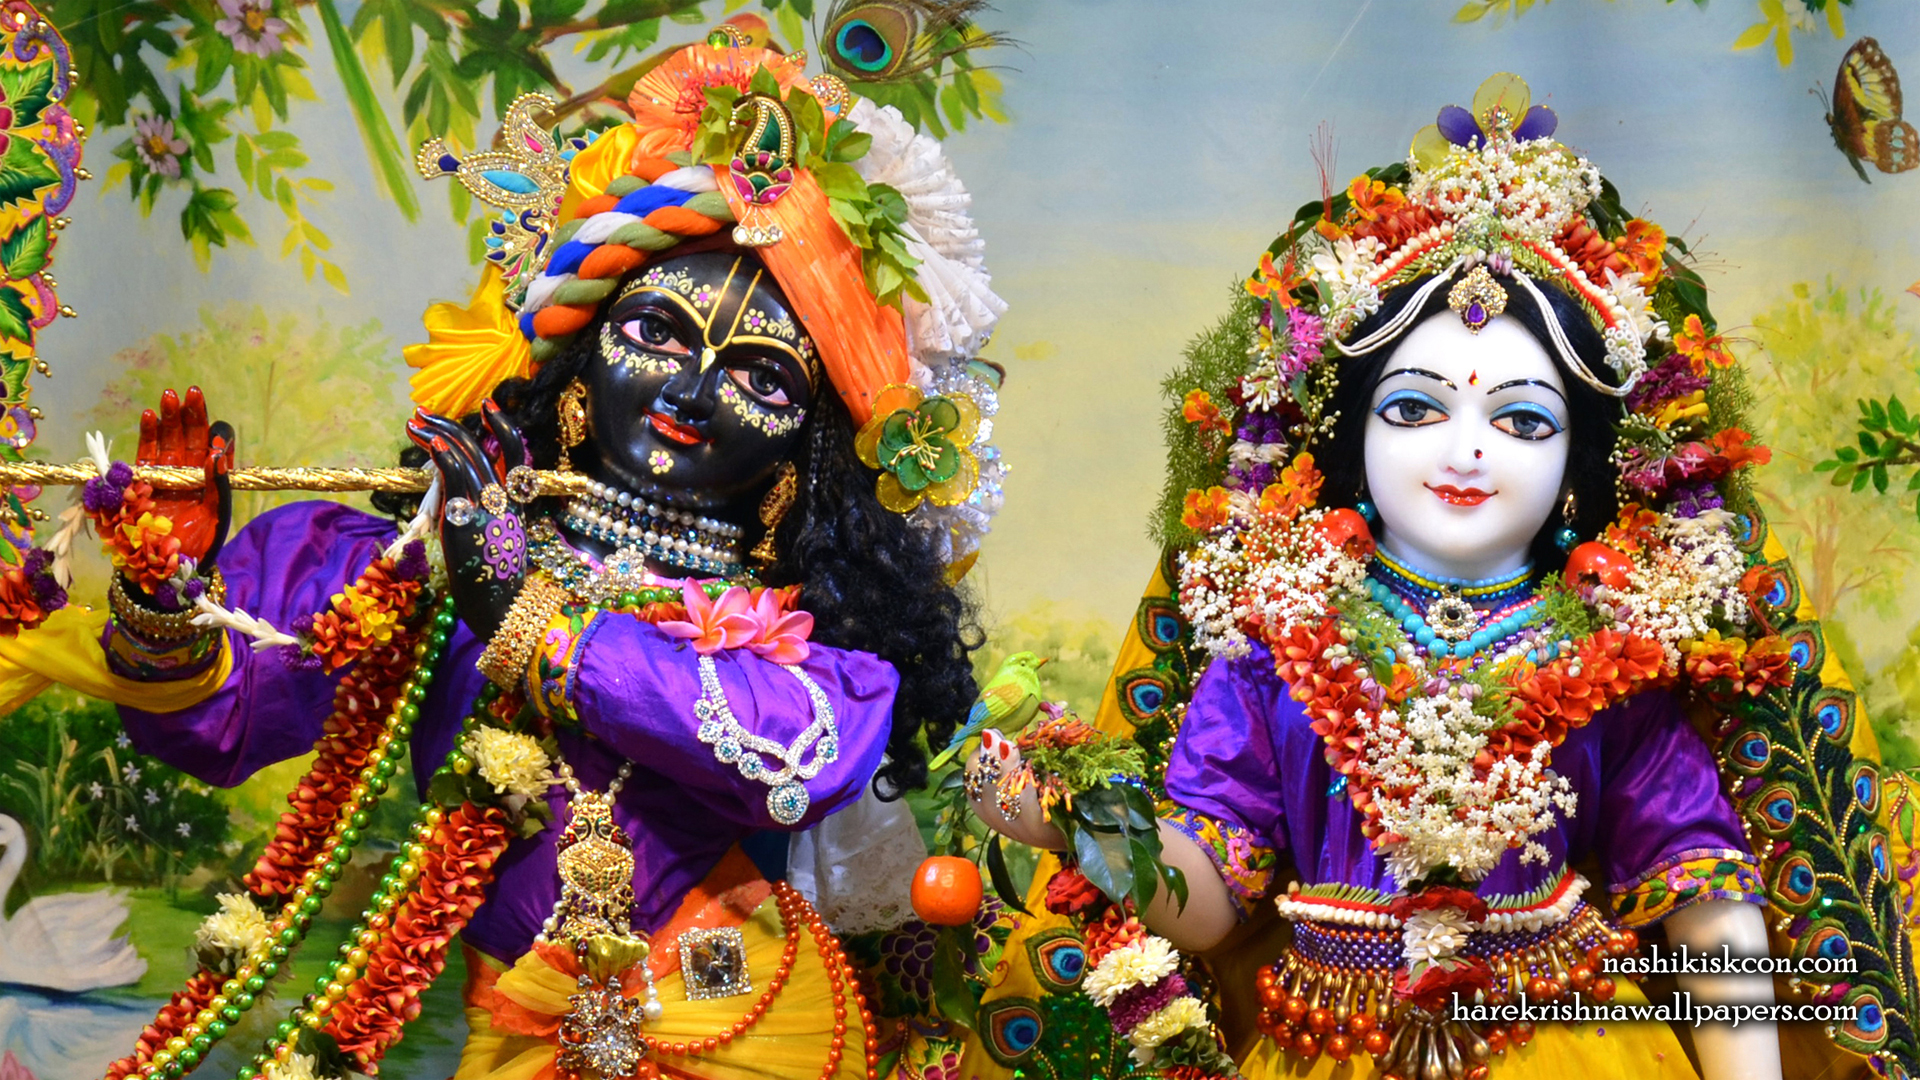 Sri Sri Radha Madan Gopal Close up Wallpaper (010) Size 1920x1080 Download